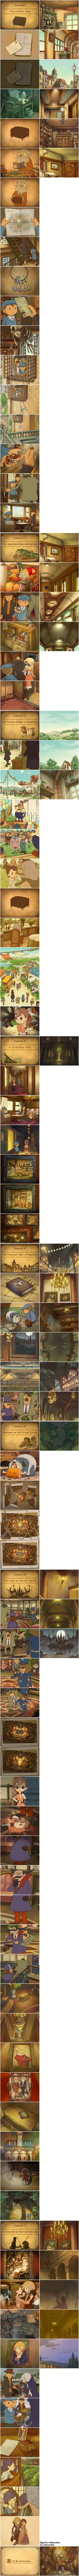 .The Diabolical box. This was the first professor layton game i finished, and I cried at the end.